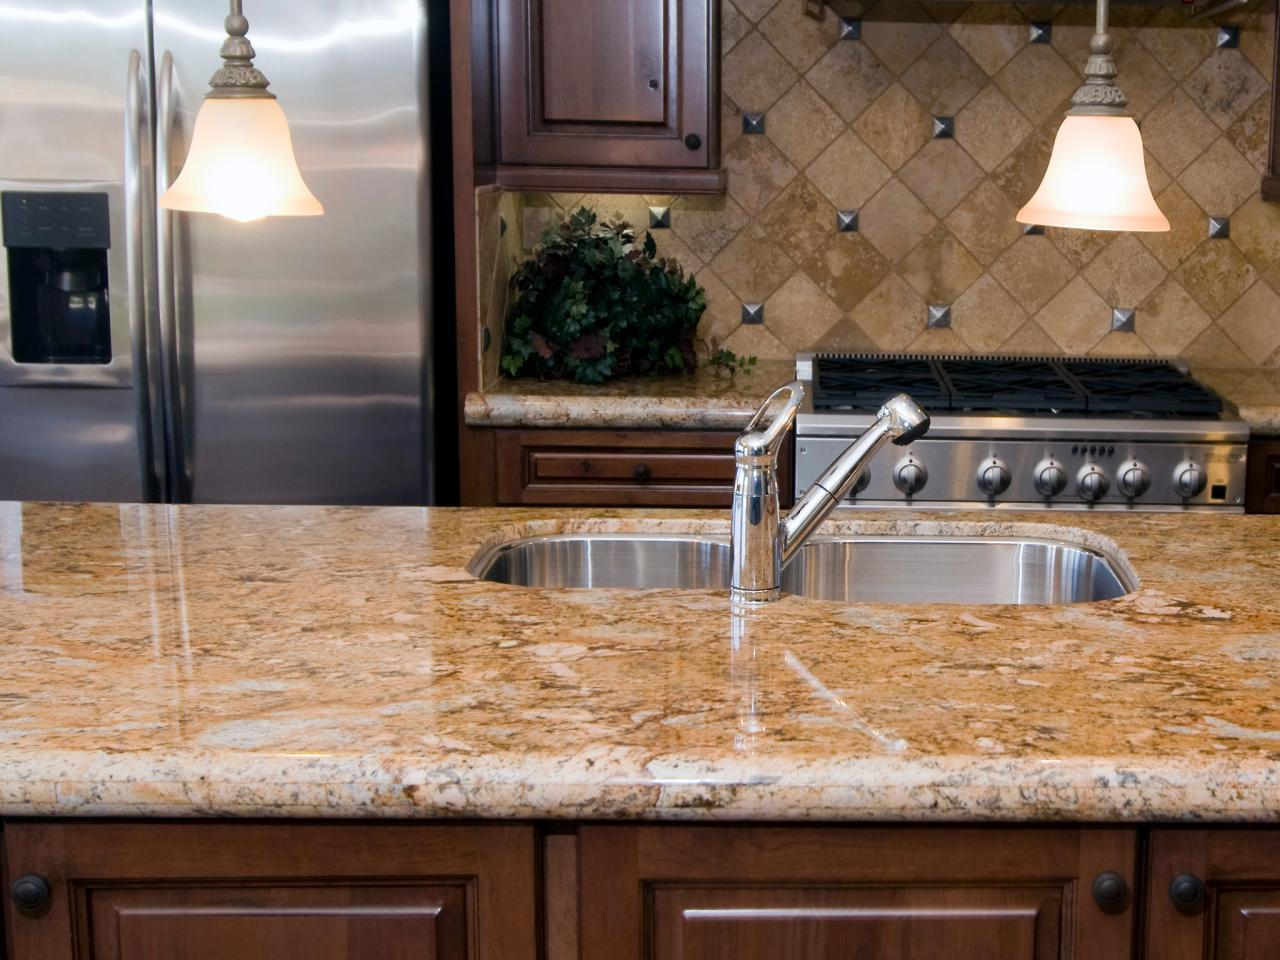 Neutral granite countertops